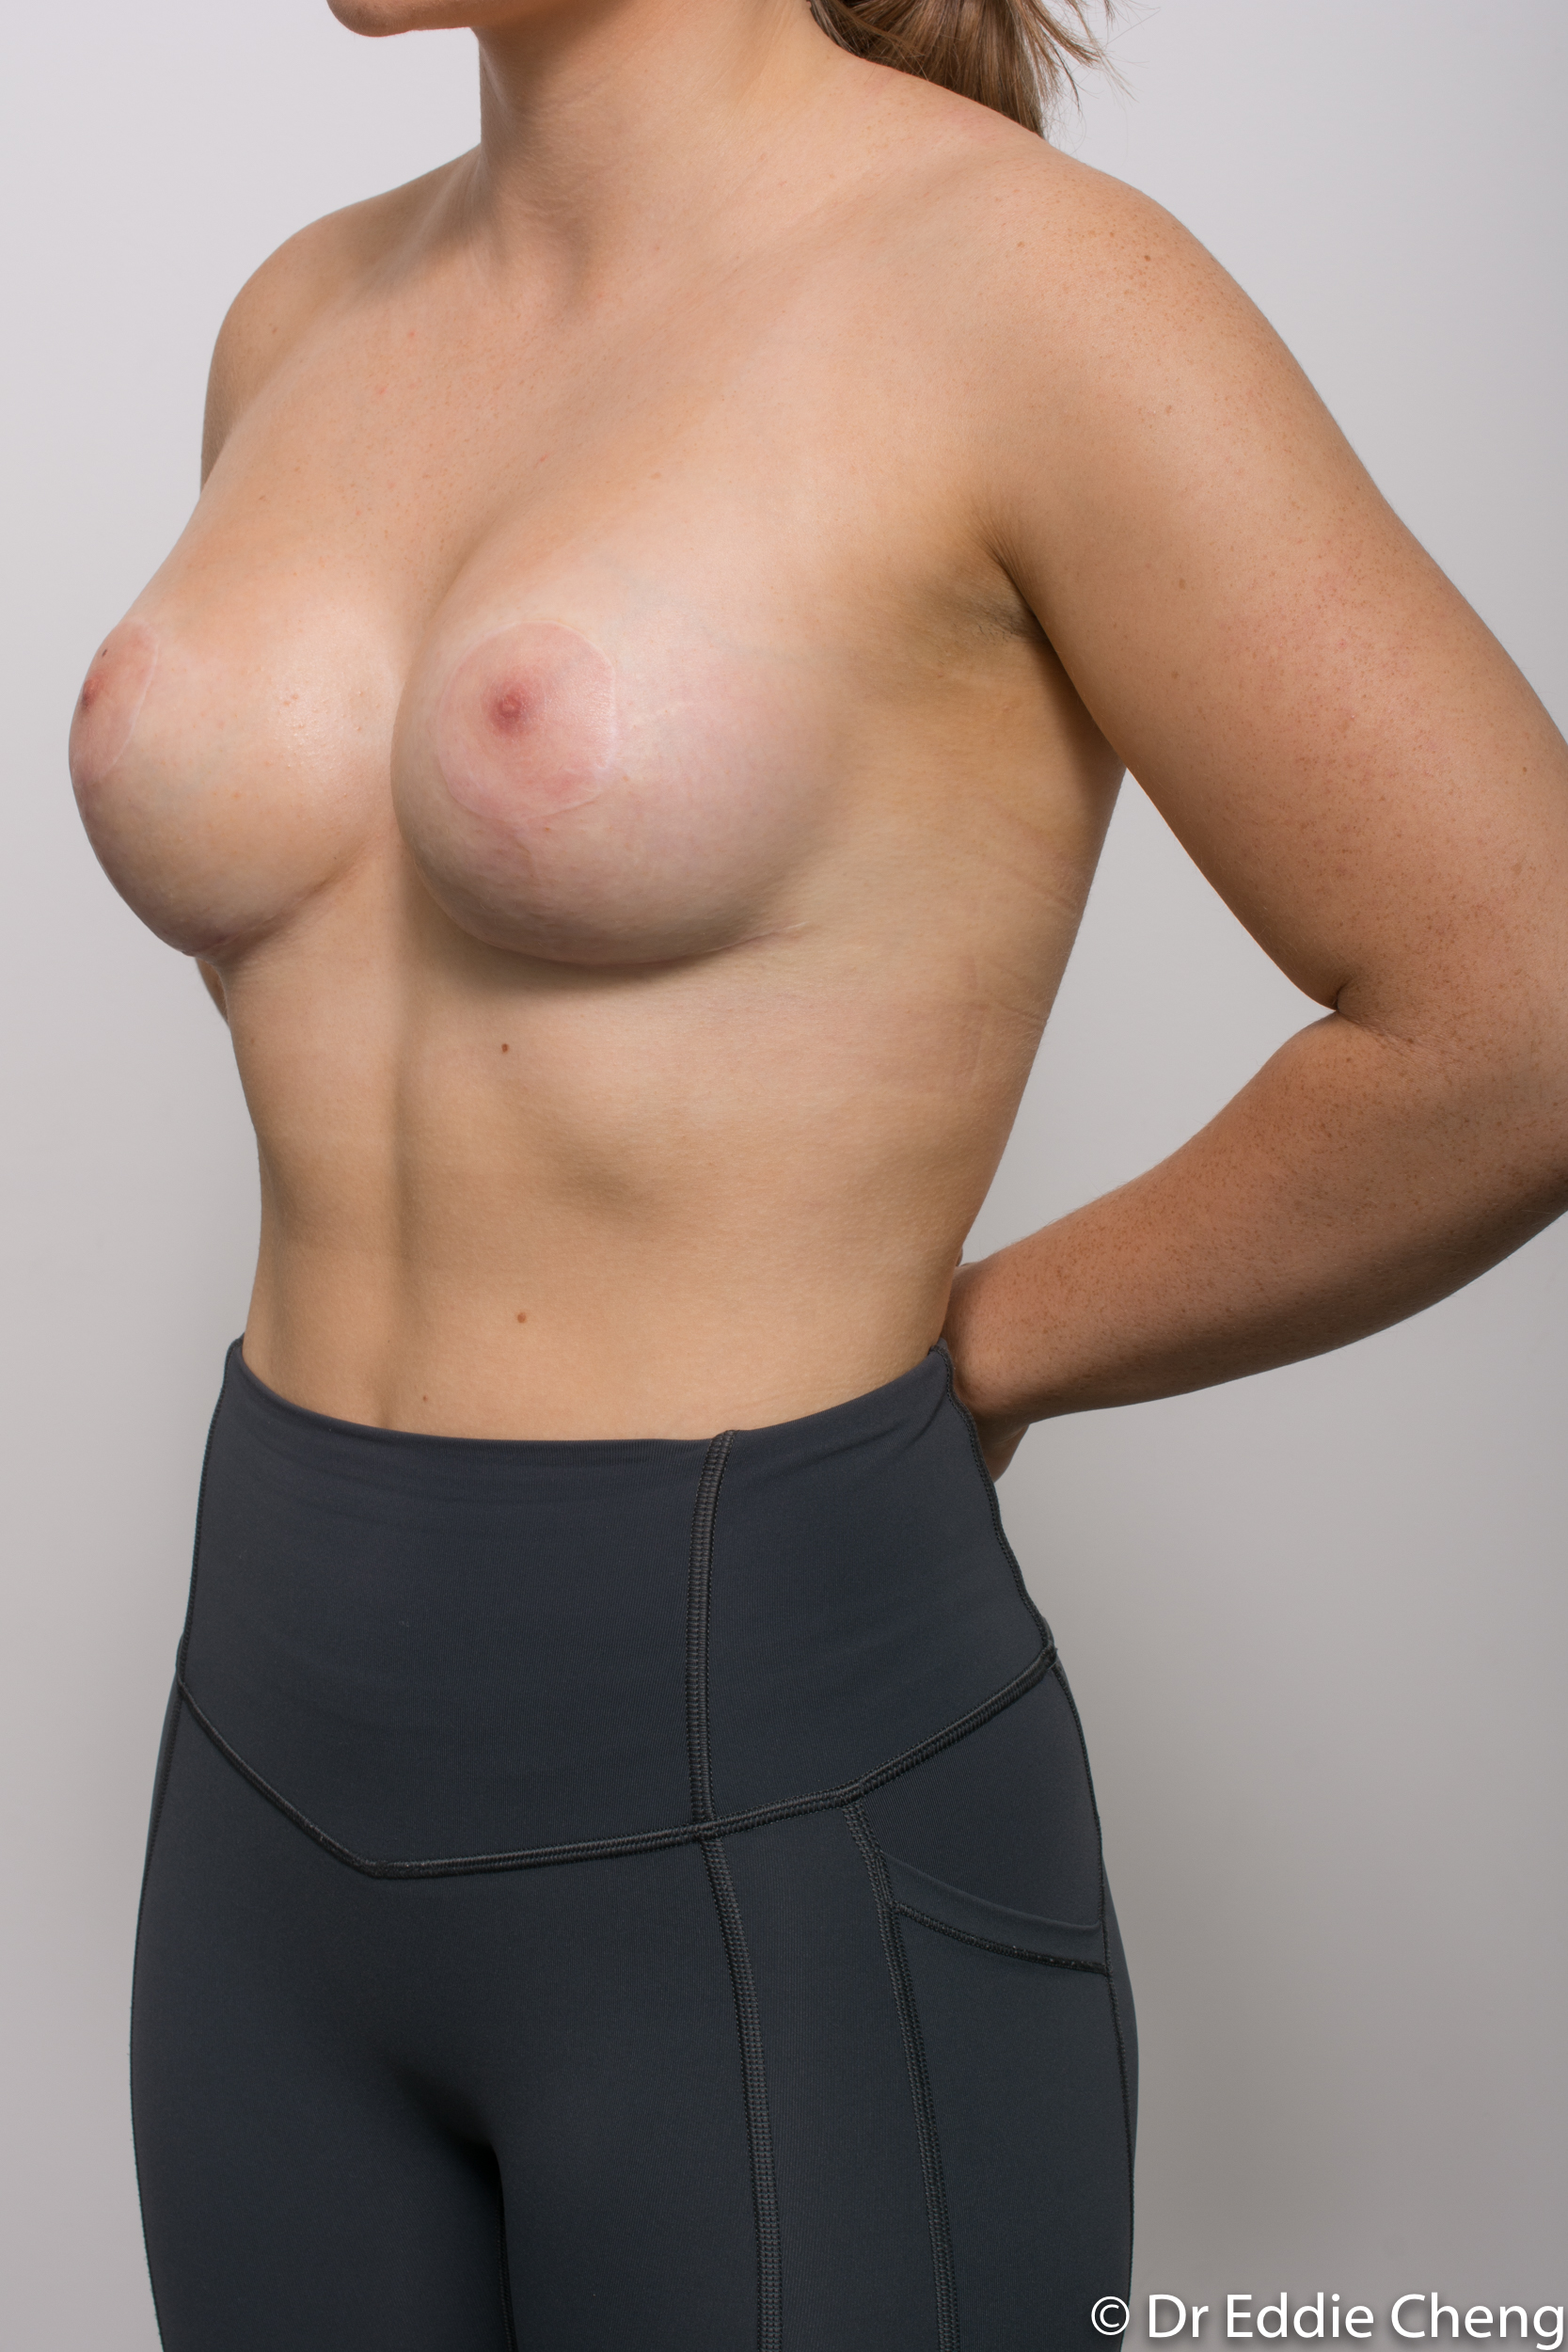 2 stage procedure tuberous breasts dr eddie cheng brisbane surgeon pre and post operative images -2-2